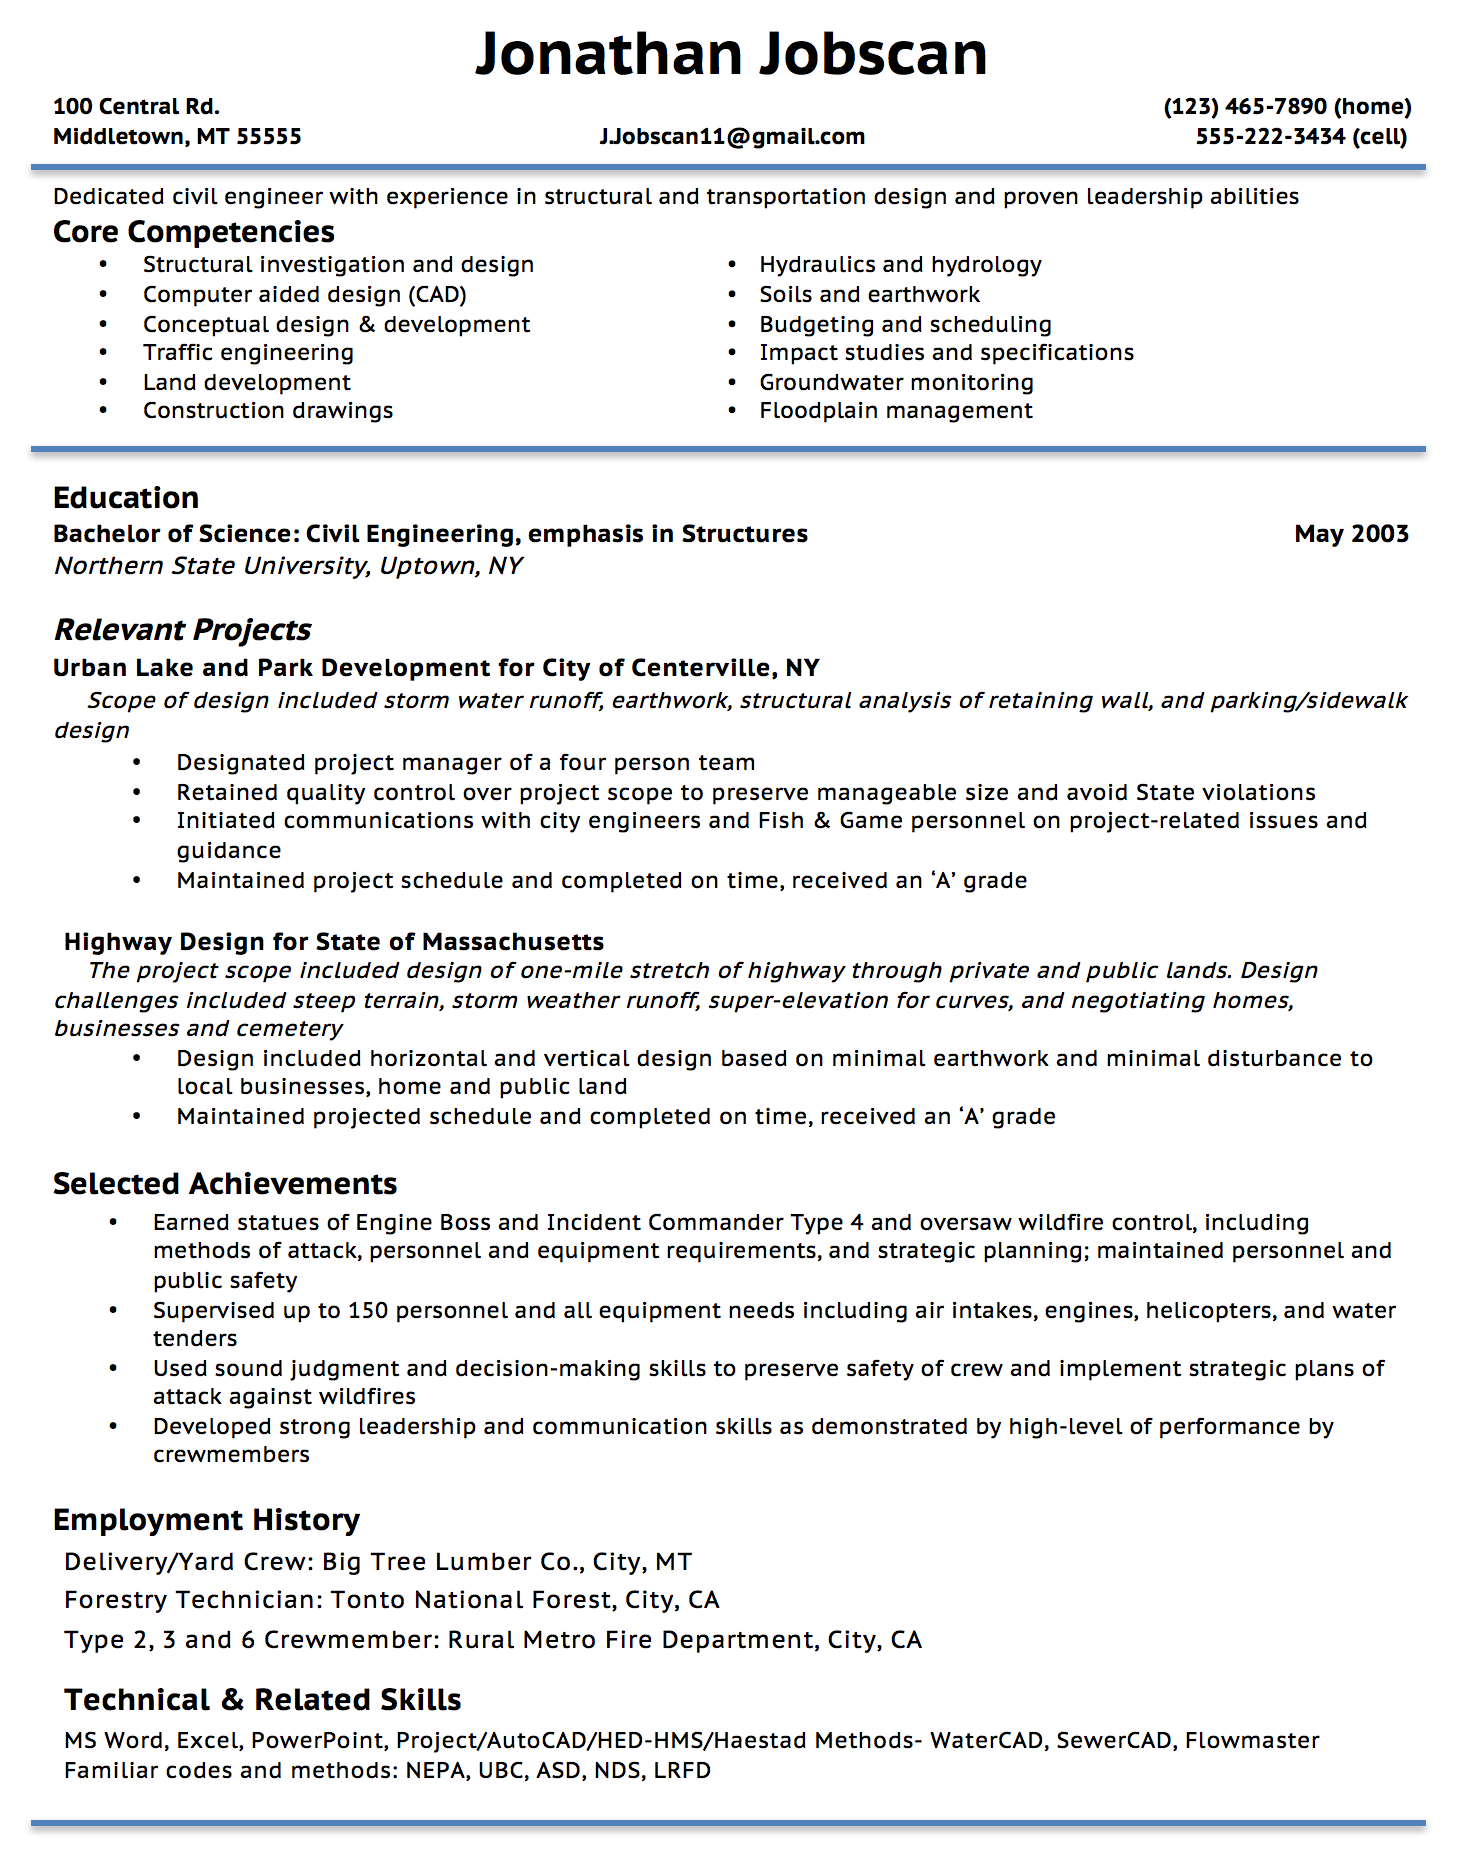 Opposenewapstandardsus  Stunning Resume Writing Guide  Jobscan With Likable Example Of A Functional Resume Format With Comely Free Examples Of Resumes Also Resume With No Job Experience In Addition Resume Examples Free And Should I Put My Address On My Resume As Well As Electronic Resume Additionally Resume Template Download Word From Jobscanco With Opposenewapstandardsus  Likable Resume Writing Guide  Jobscan With Comely Example Of A Functional Resume Format And Stunning Free Examples Of Resumes Also Resume With No Job Experience In Addition Resume Examples Free From Jobscanco